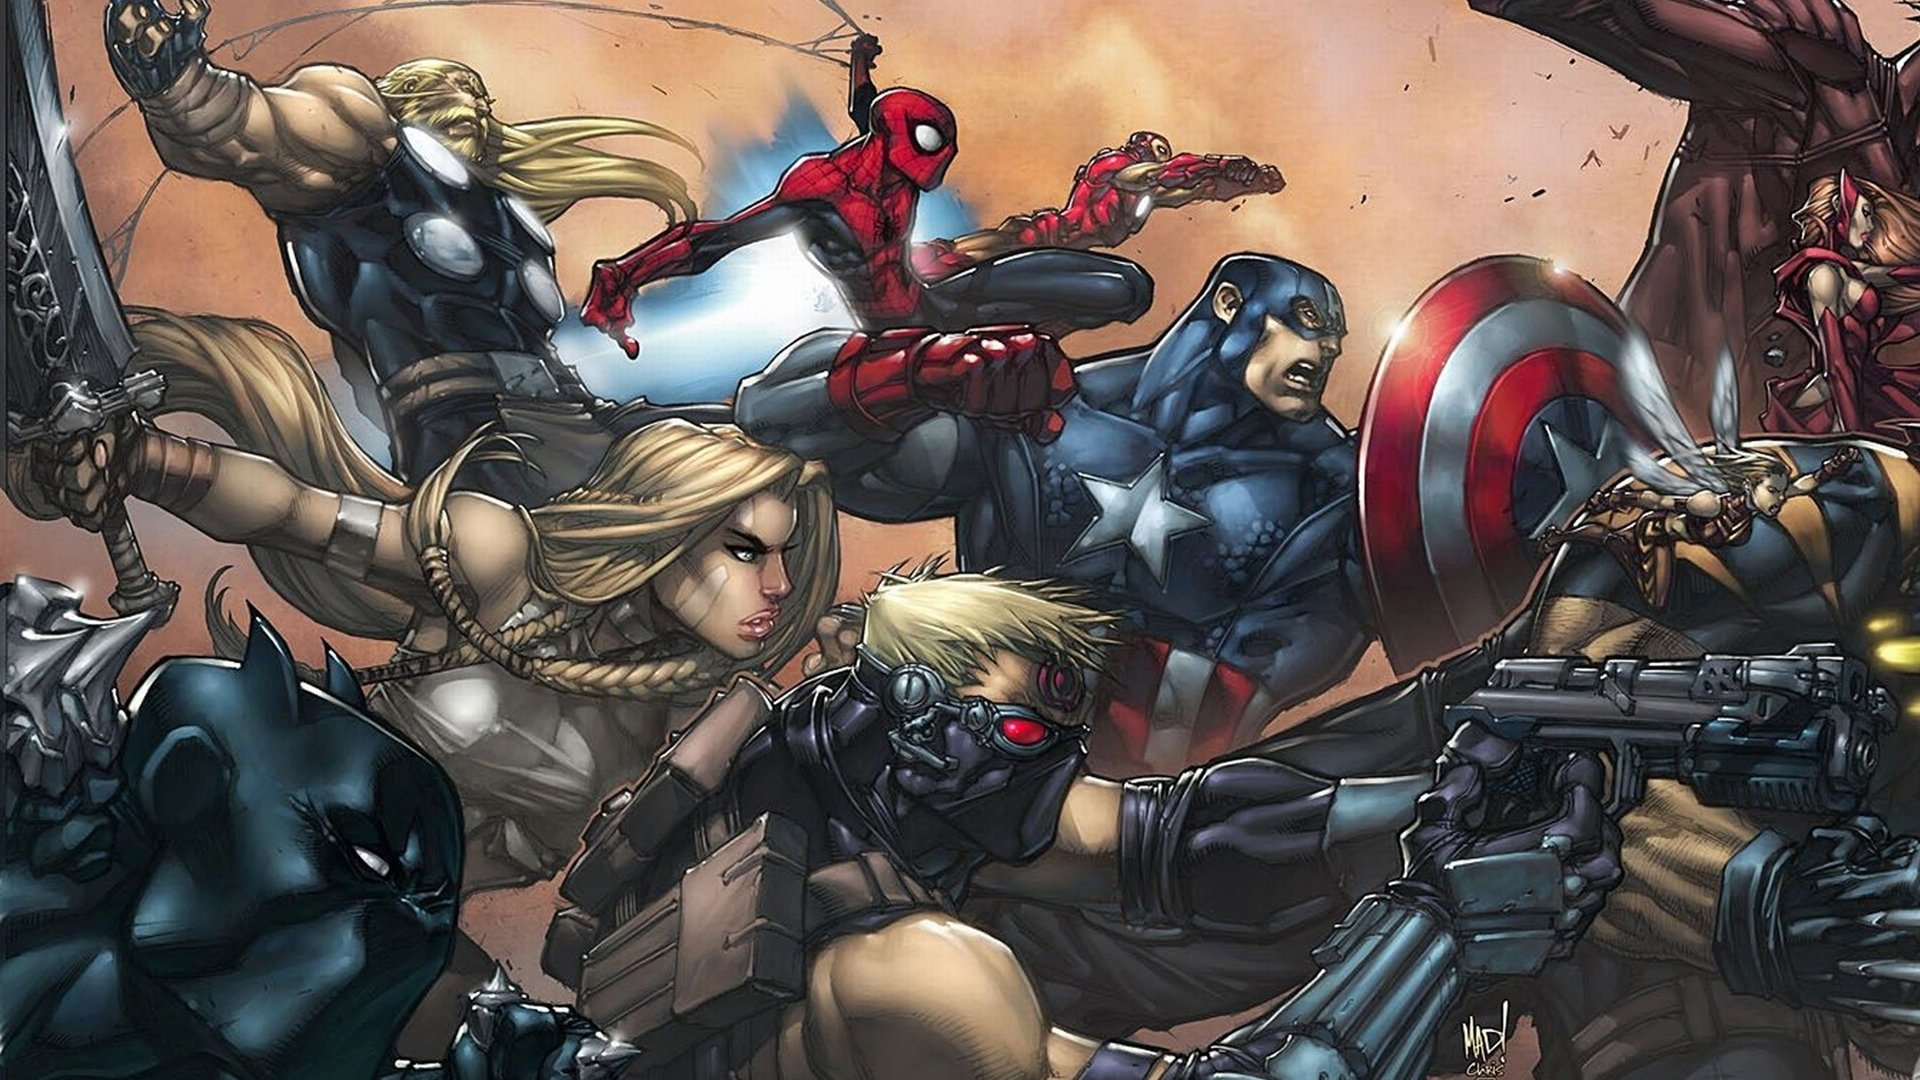 Good Wallpaper Marvel Valkyrie - thumb-1920-142613  You Should Have_628957.jpg